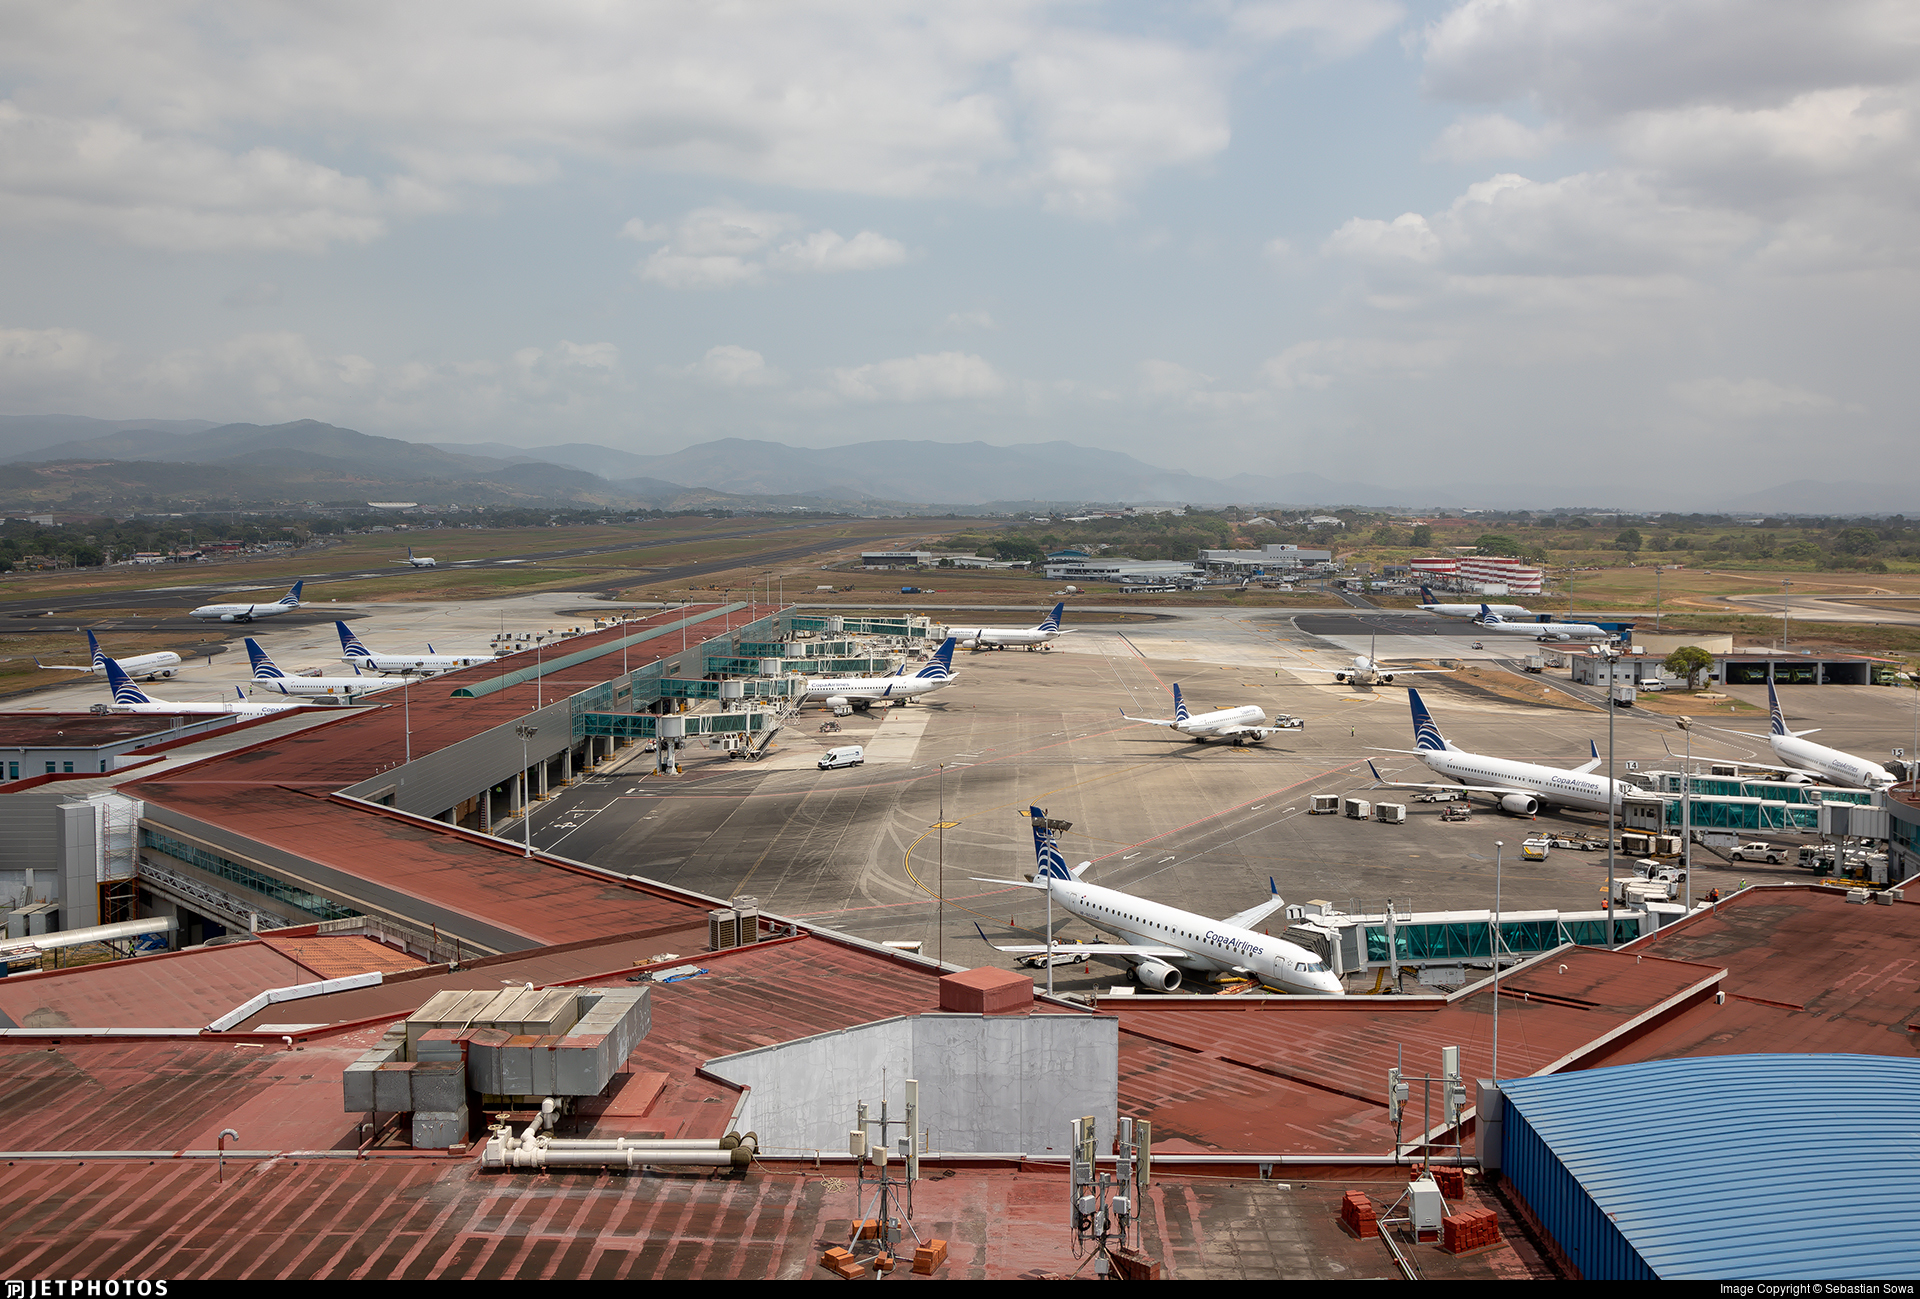 MPTO - Airport - Airport Overview